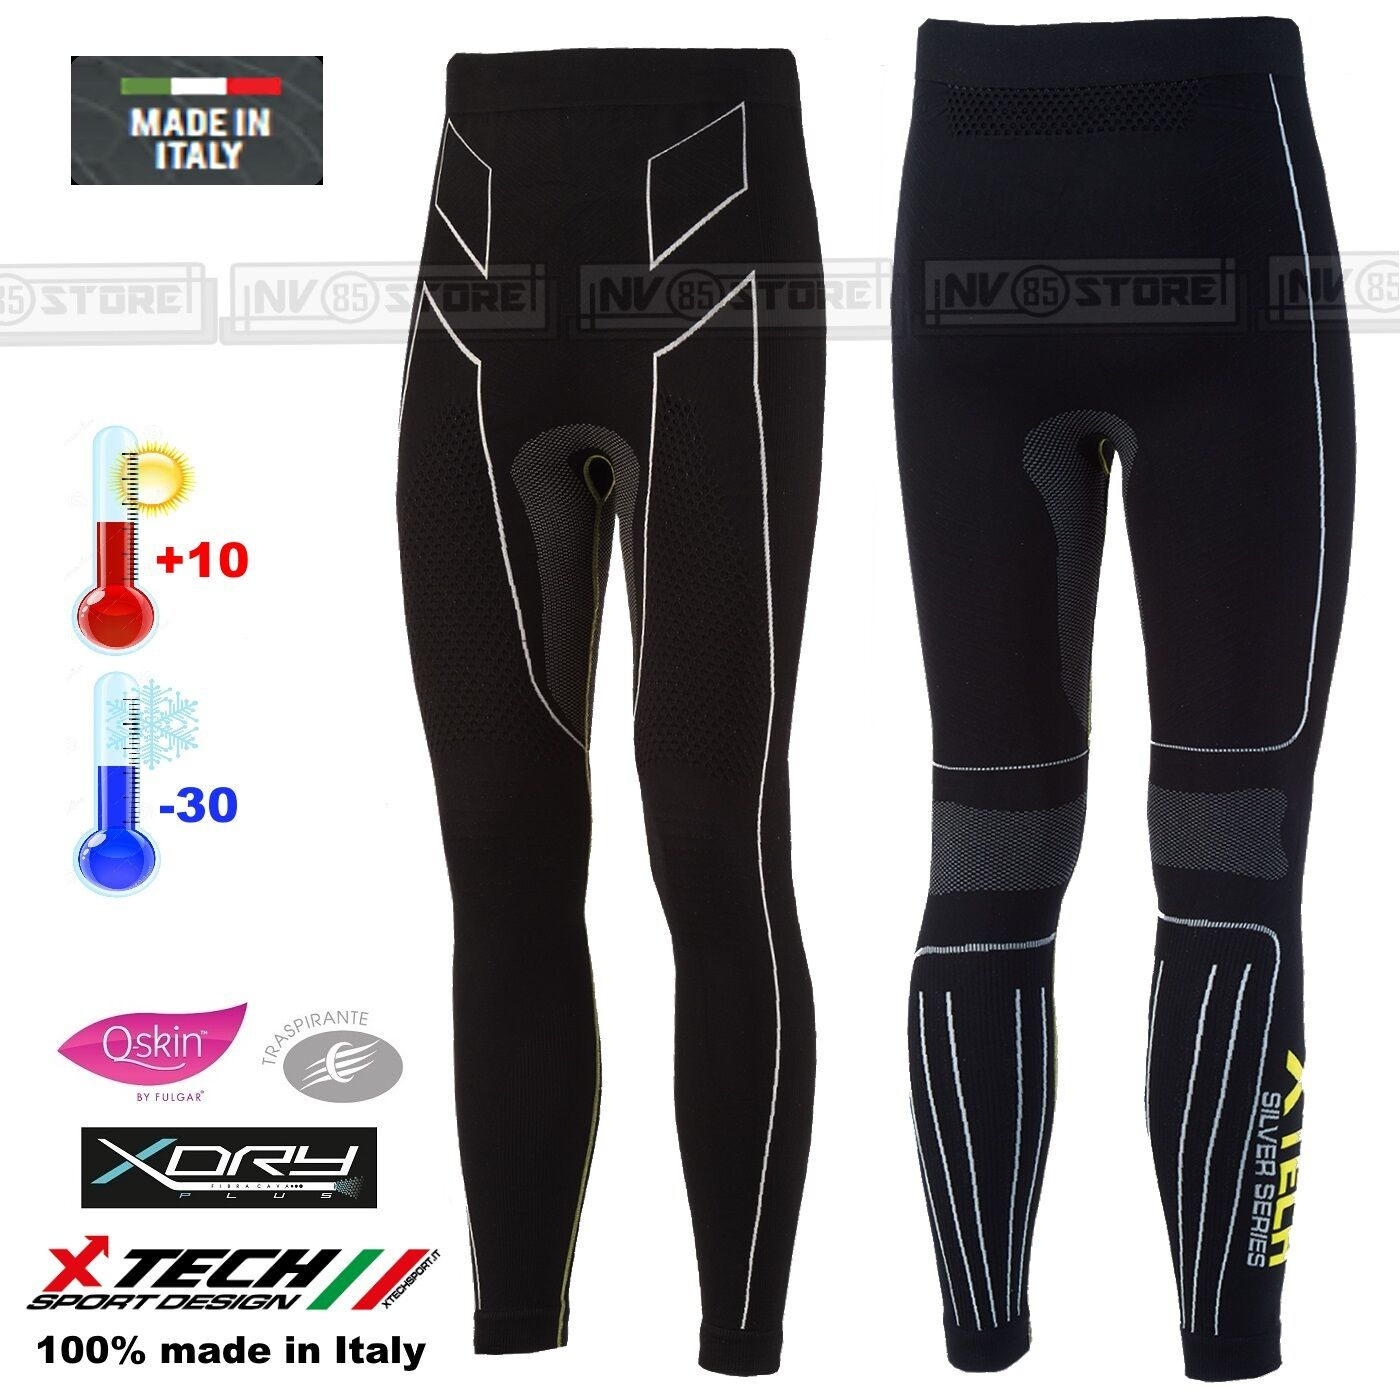 Pantalone XTECH Intimo Termico X-TECH PREMIUM -30° Thermal Pants Made in